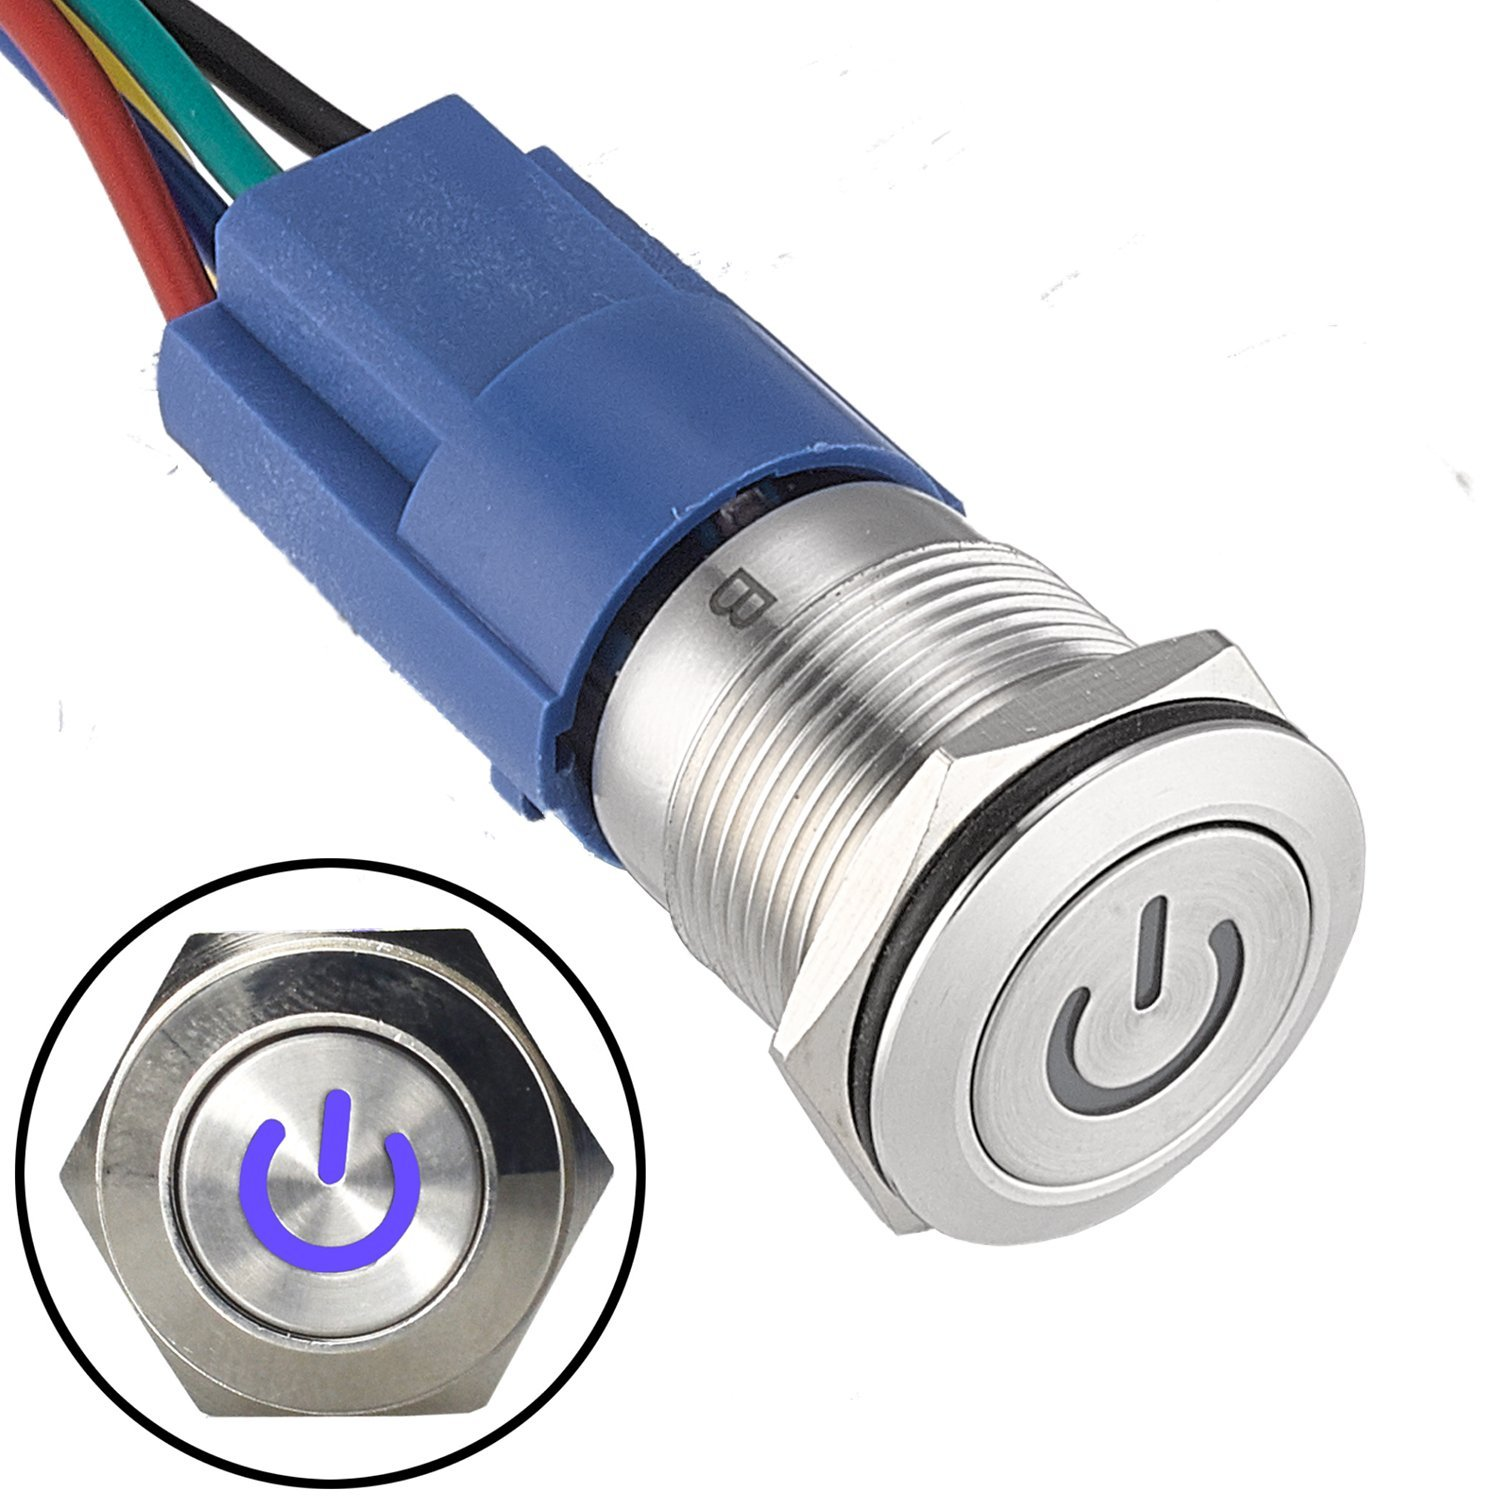 """APIELE [3 Year Warranty] 19mm Latching Push Button Switch 3/4"""" 12V DC Power Symbol LED with Socket Plug 1NO1NC SPDT ON/Off( Blue)"""